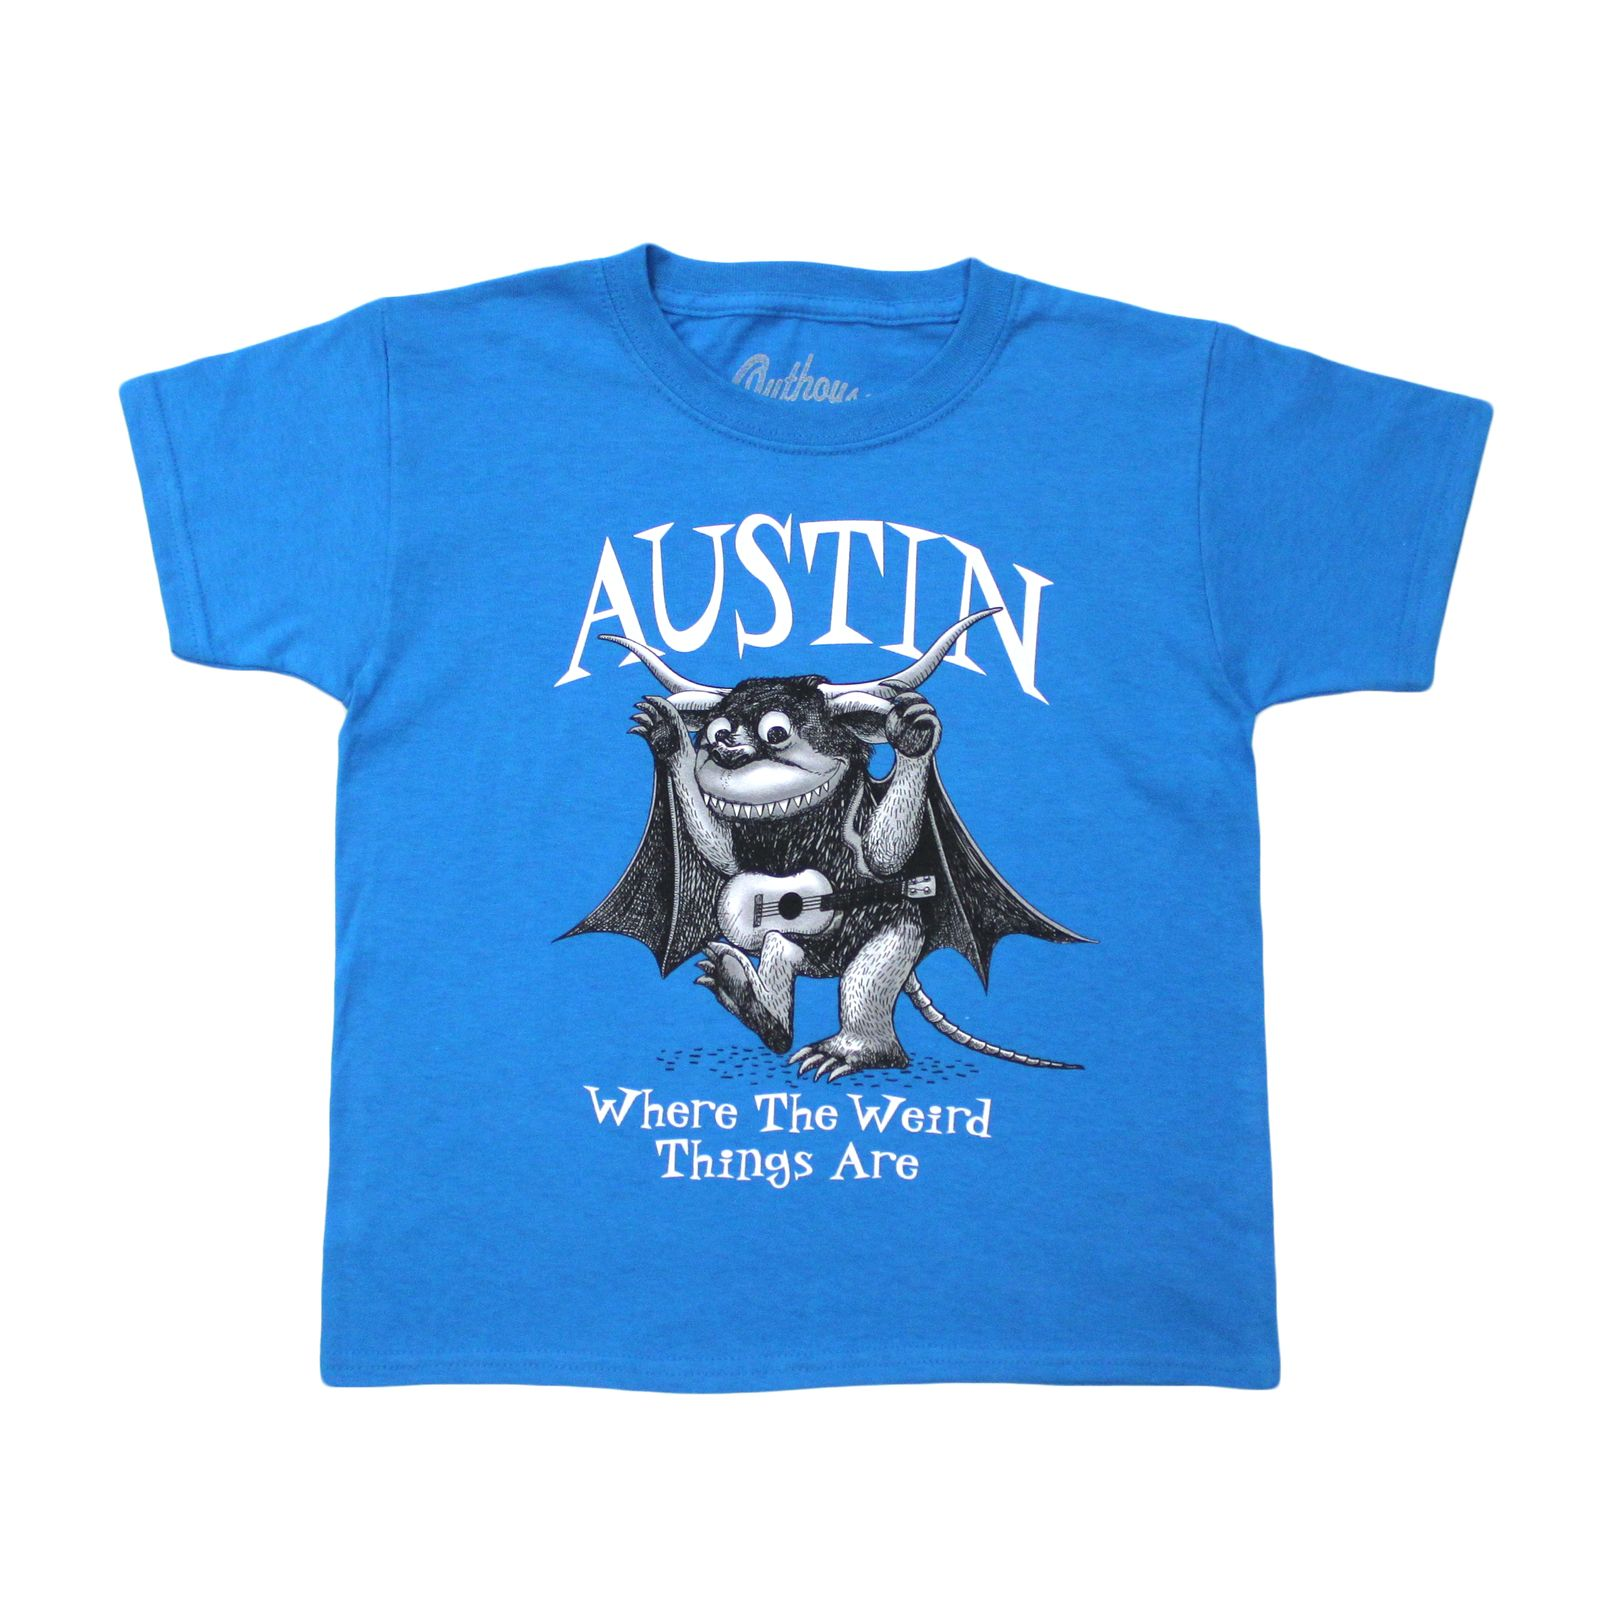 Austin Where the Weird Things Are T-shirt